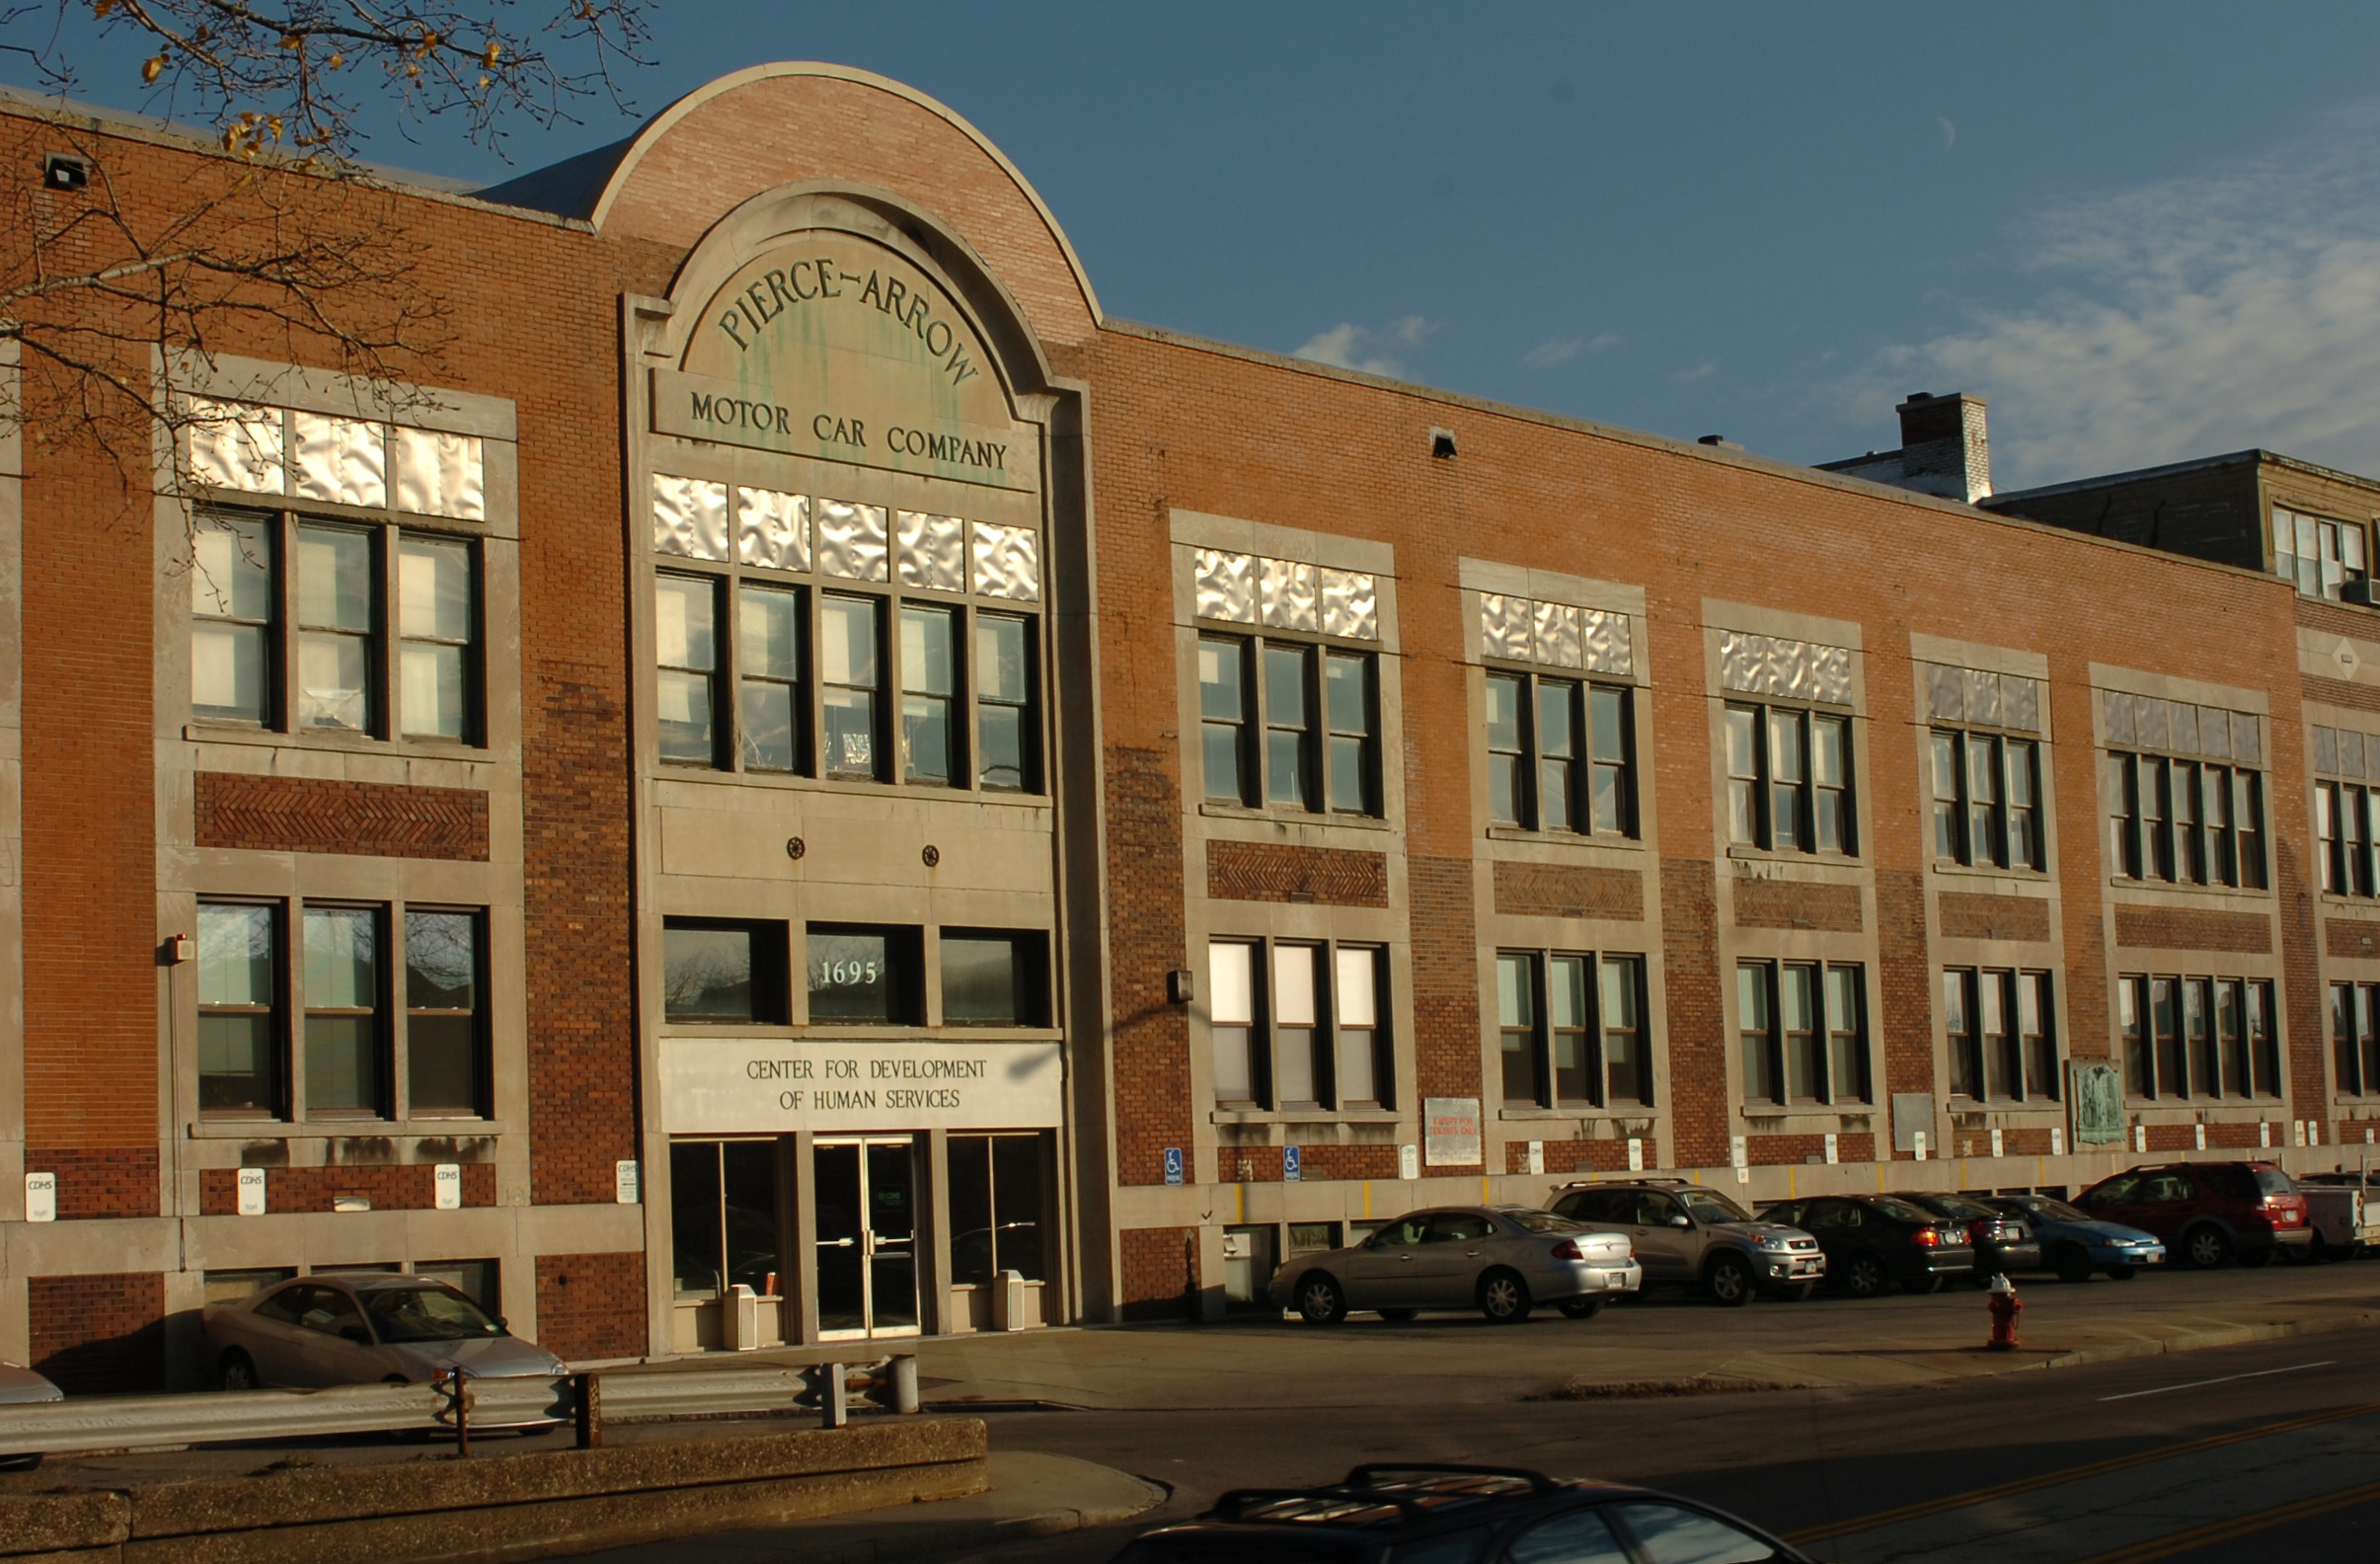 The front of the former Pierce-Arrow Motor Car Company building, at 1695 Elmwood Ave. in Buffalo. (News file photo)